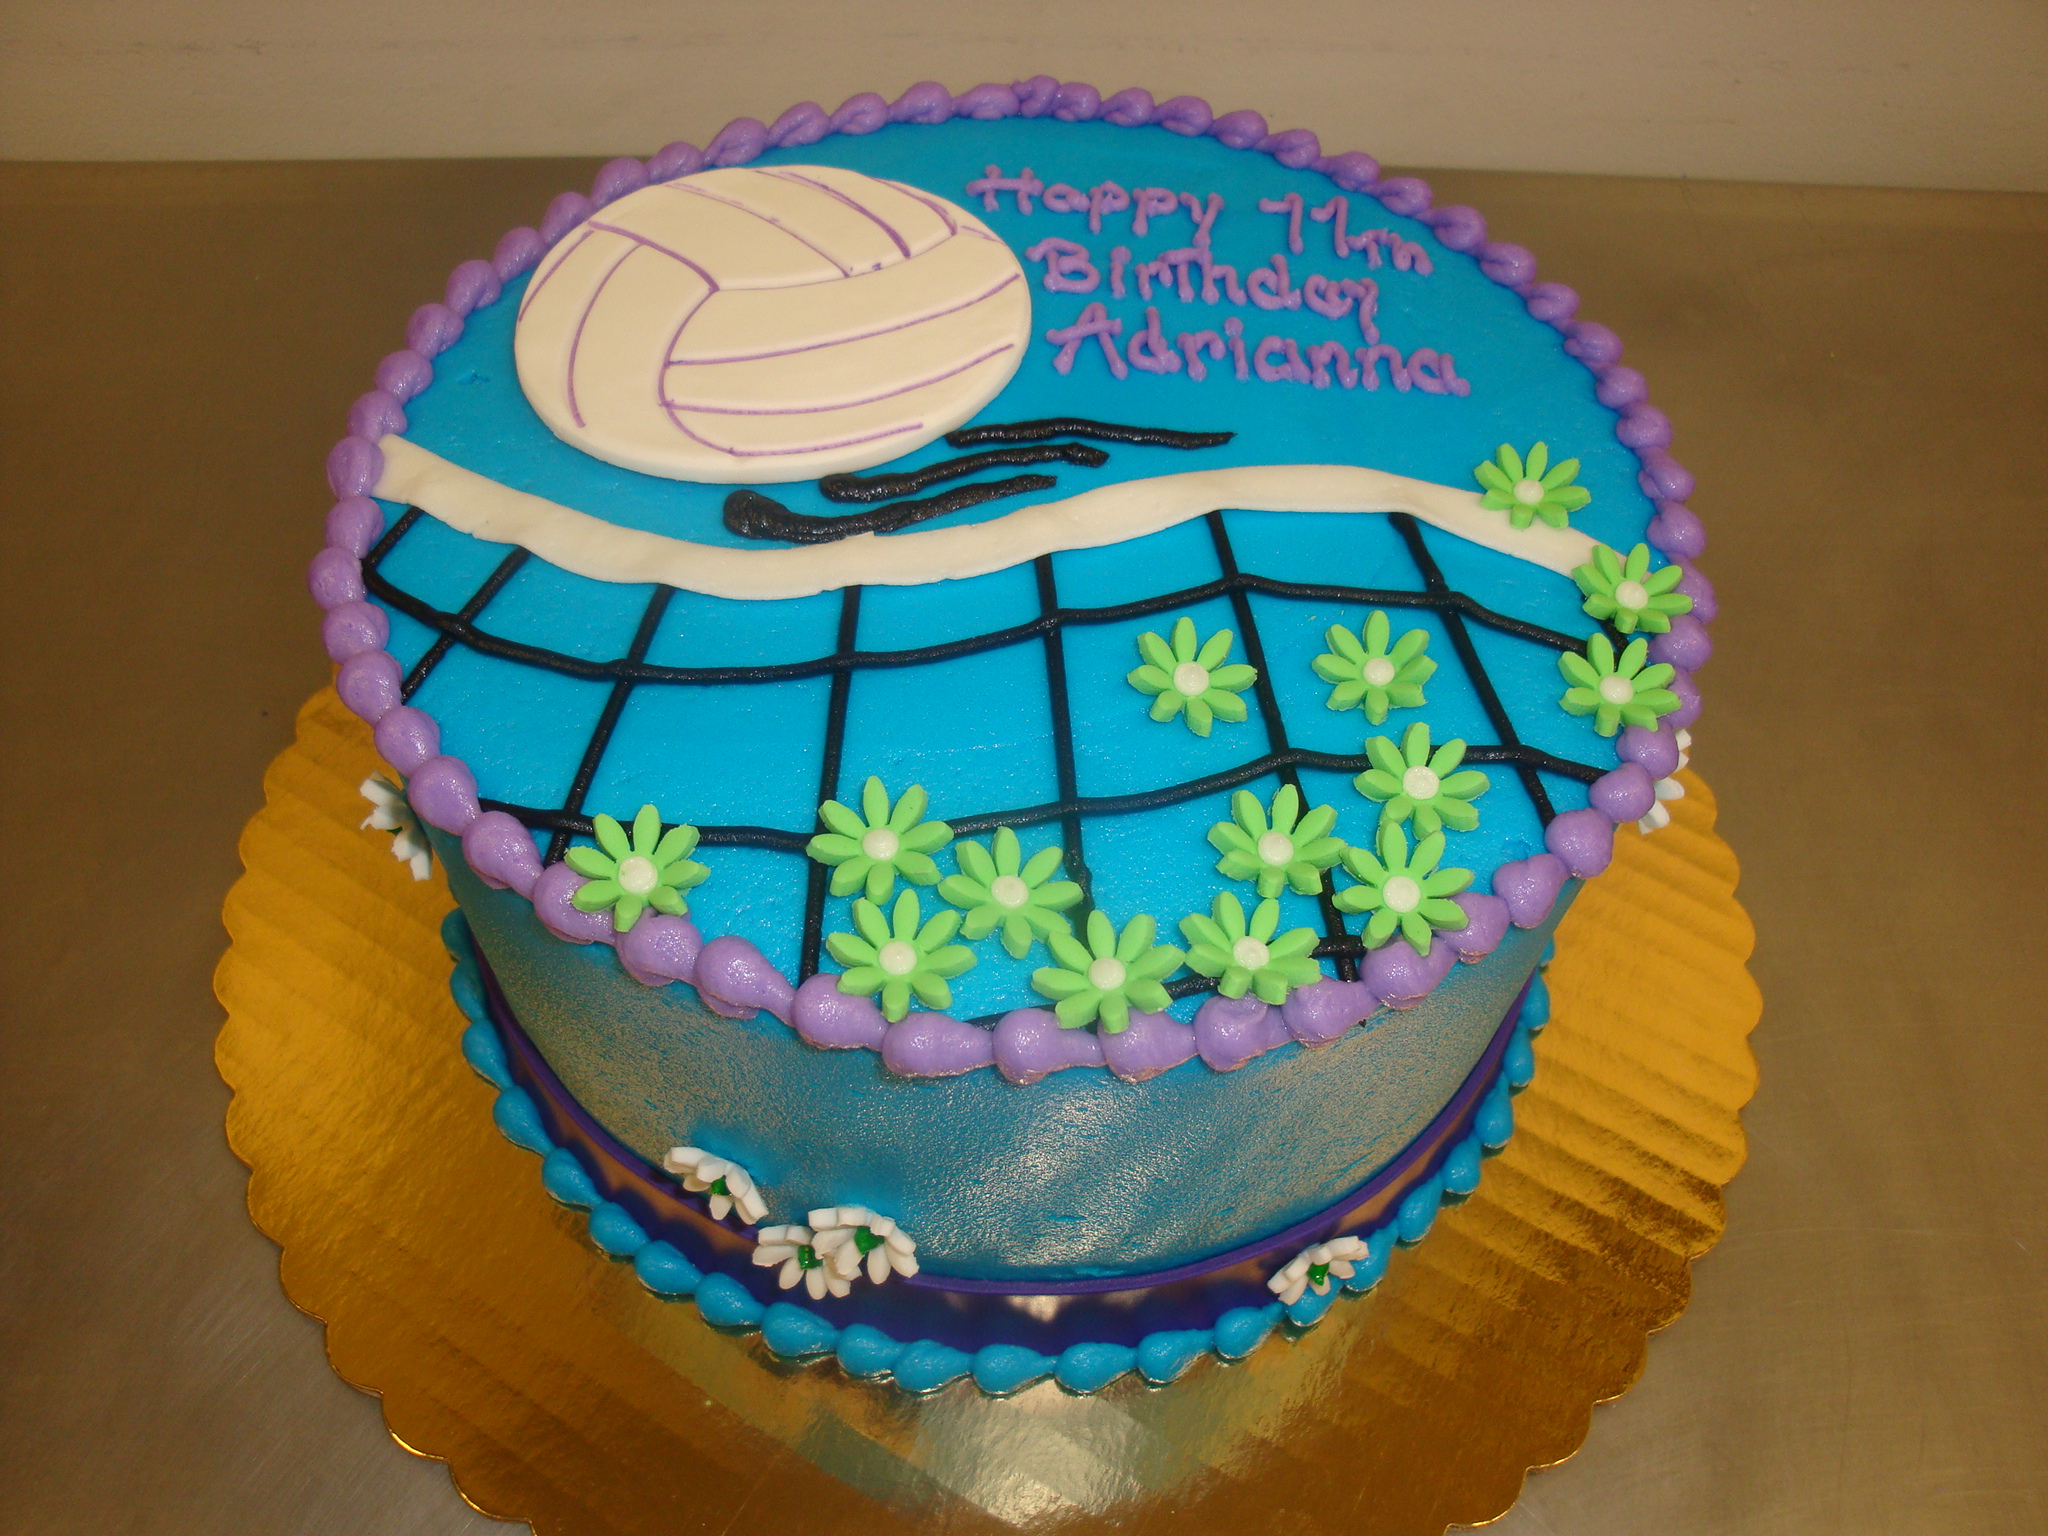 15 serving sportsball/net cake $85